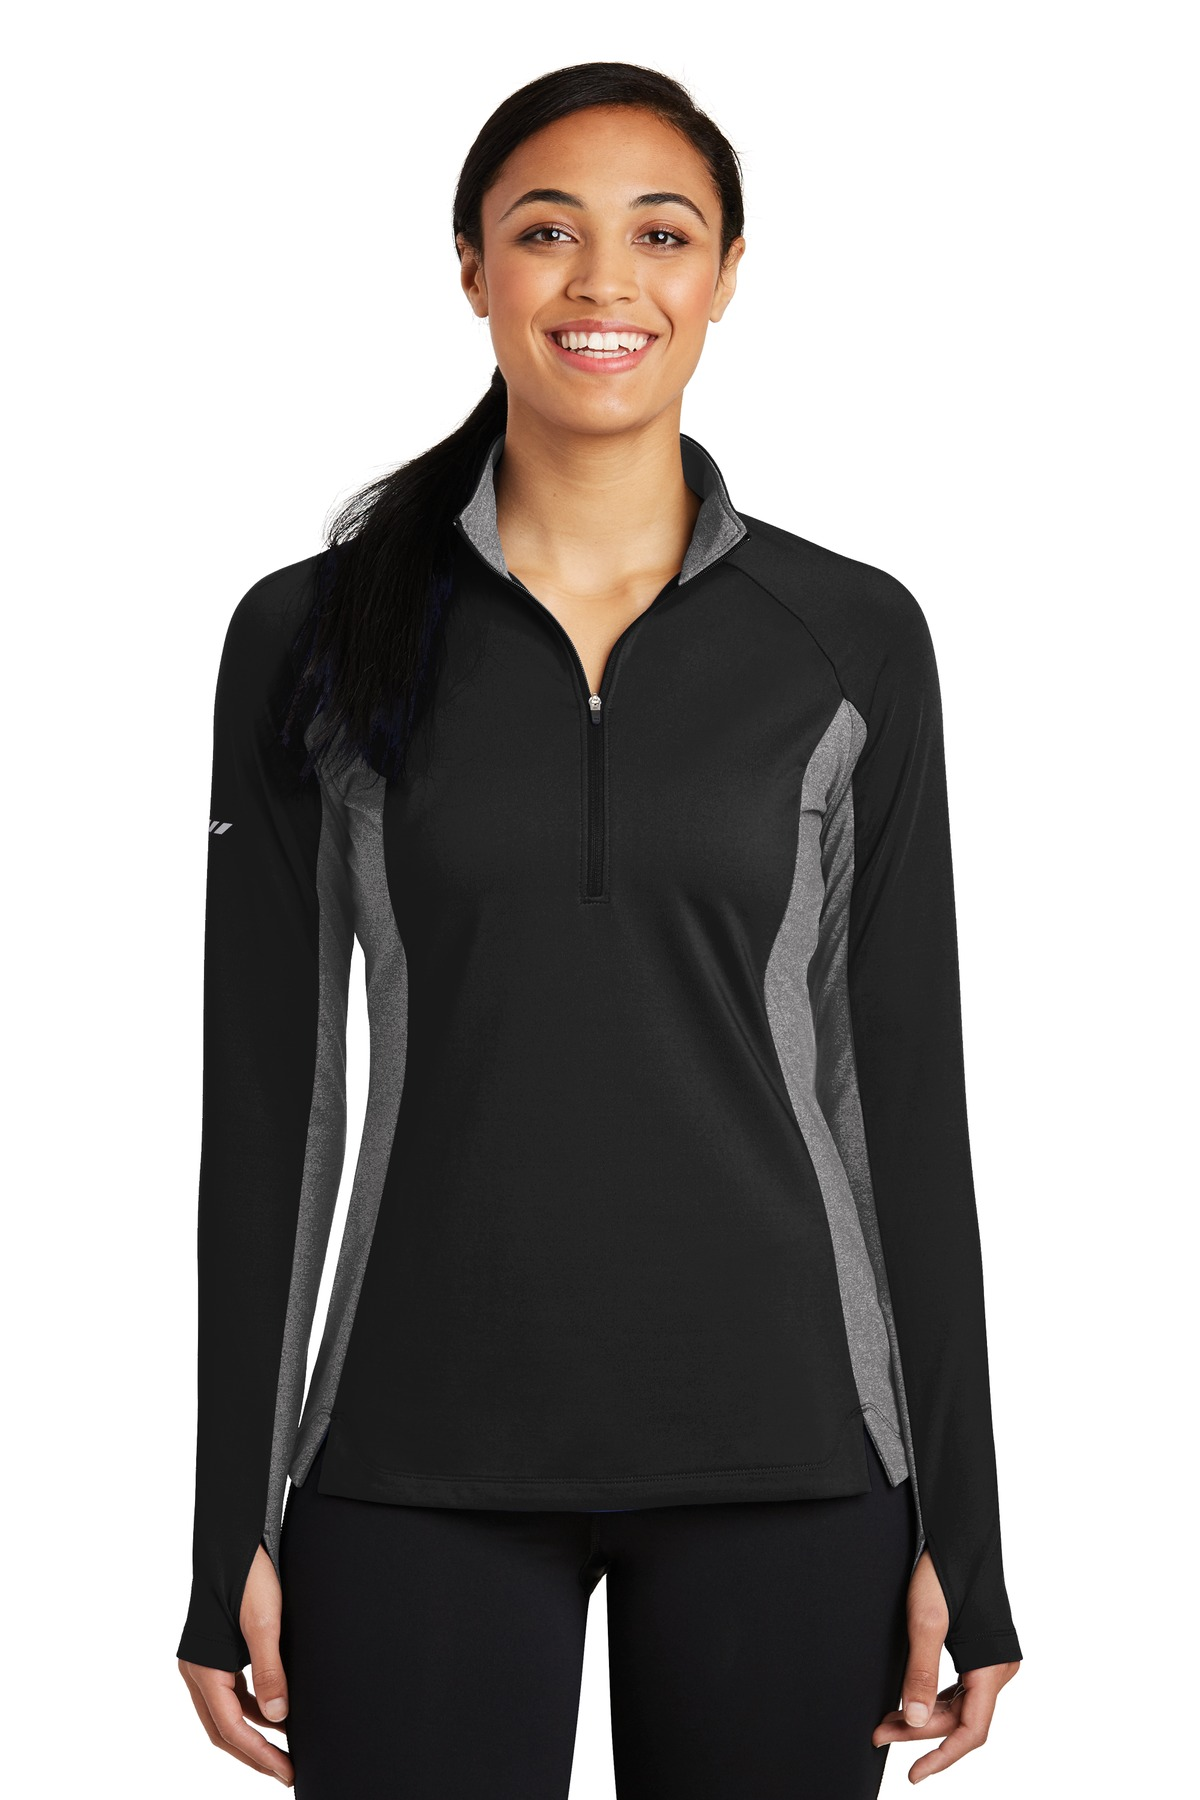 Sport-Tek ®  Ladies Sport-Wick ®  Stretch Contrast 1/2-Zip Pullover. LST854 - Black/ Charcoal Grey Heather